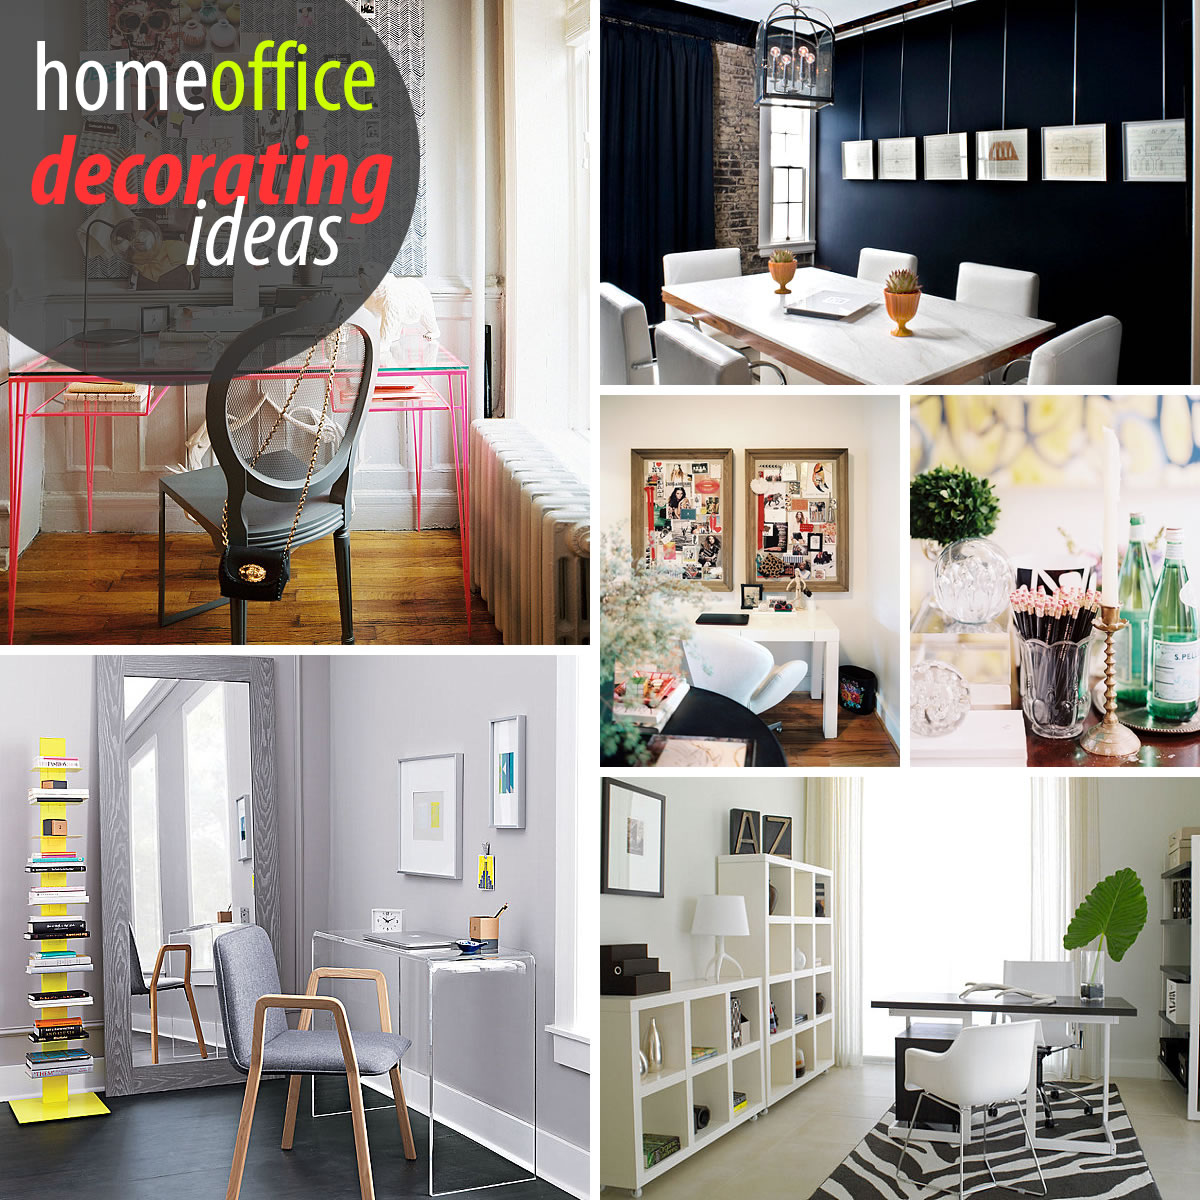 creative home office decorating ideas On clever home design ideas